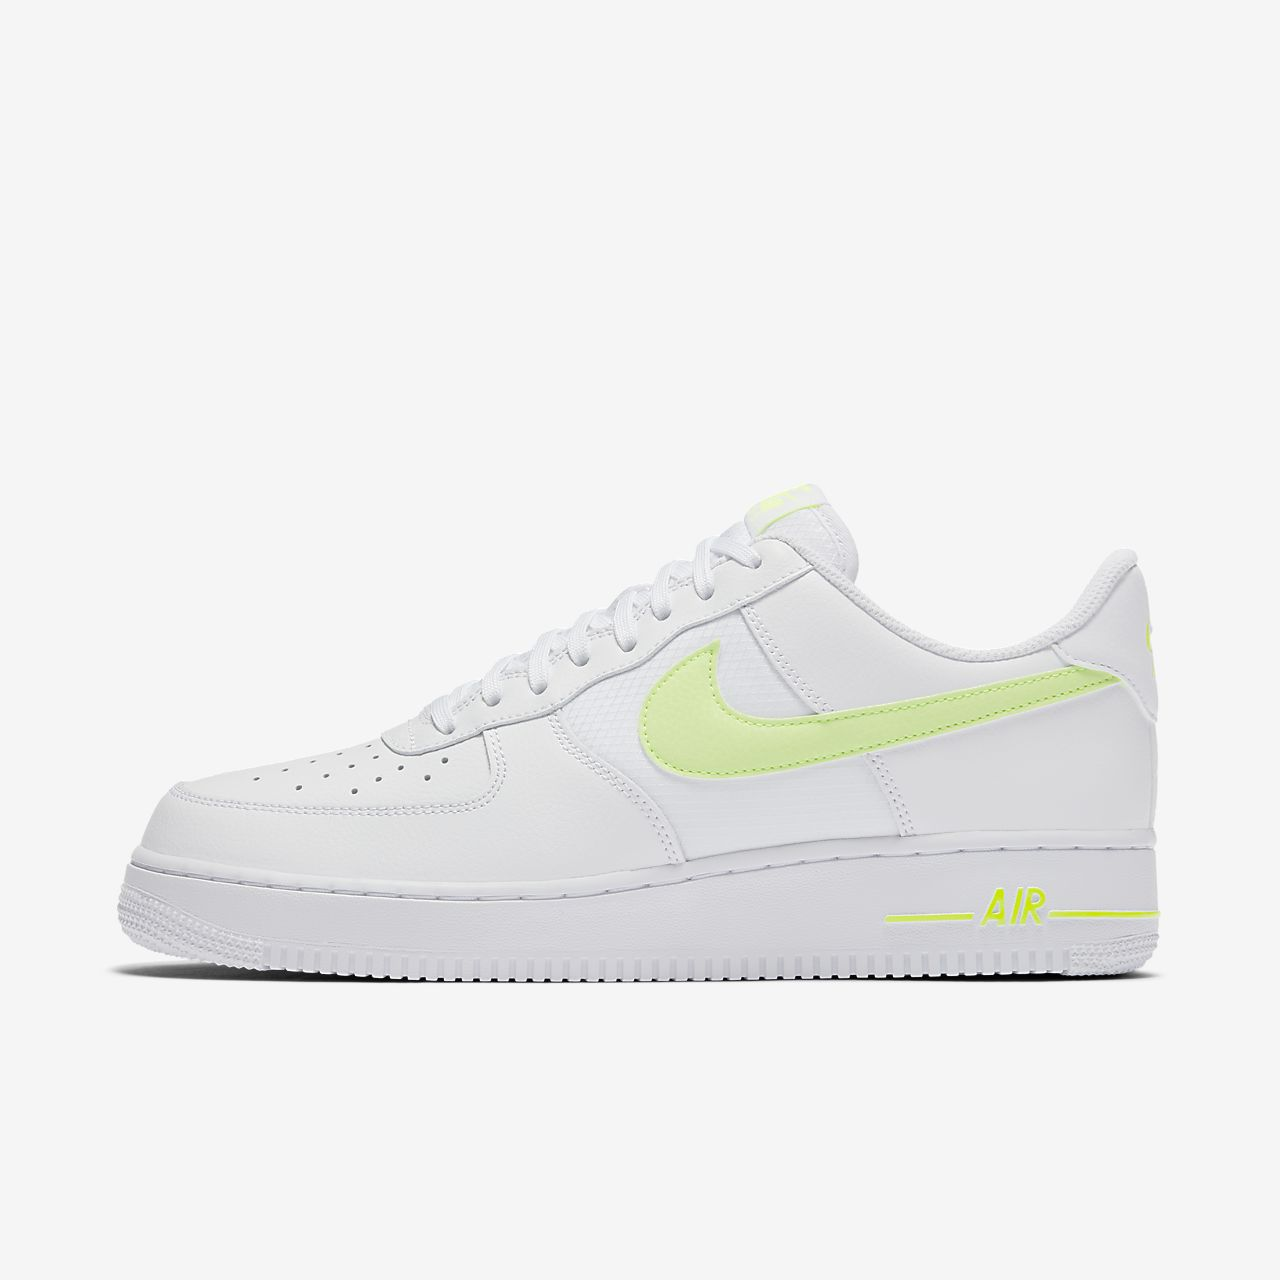 reputable site 3ee32 57ef8 ... Chaussure Nike Air Force 1  07 LV8 pour Homme